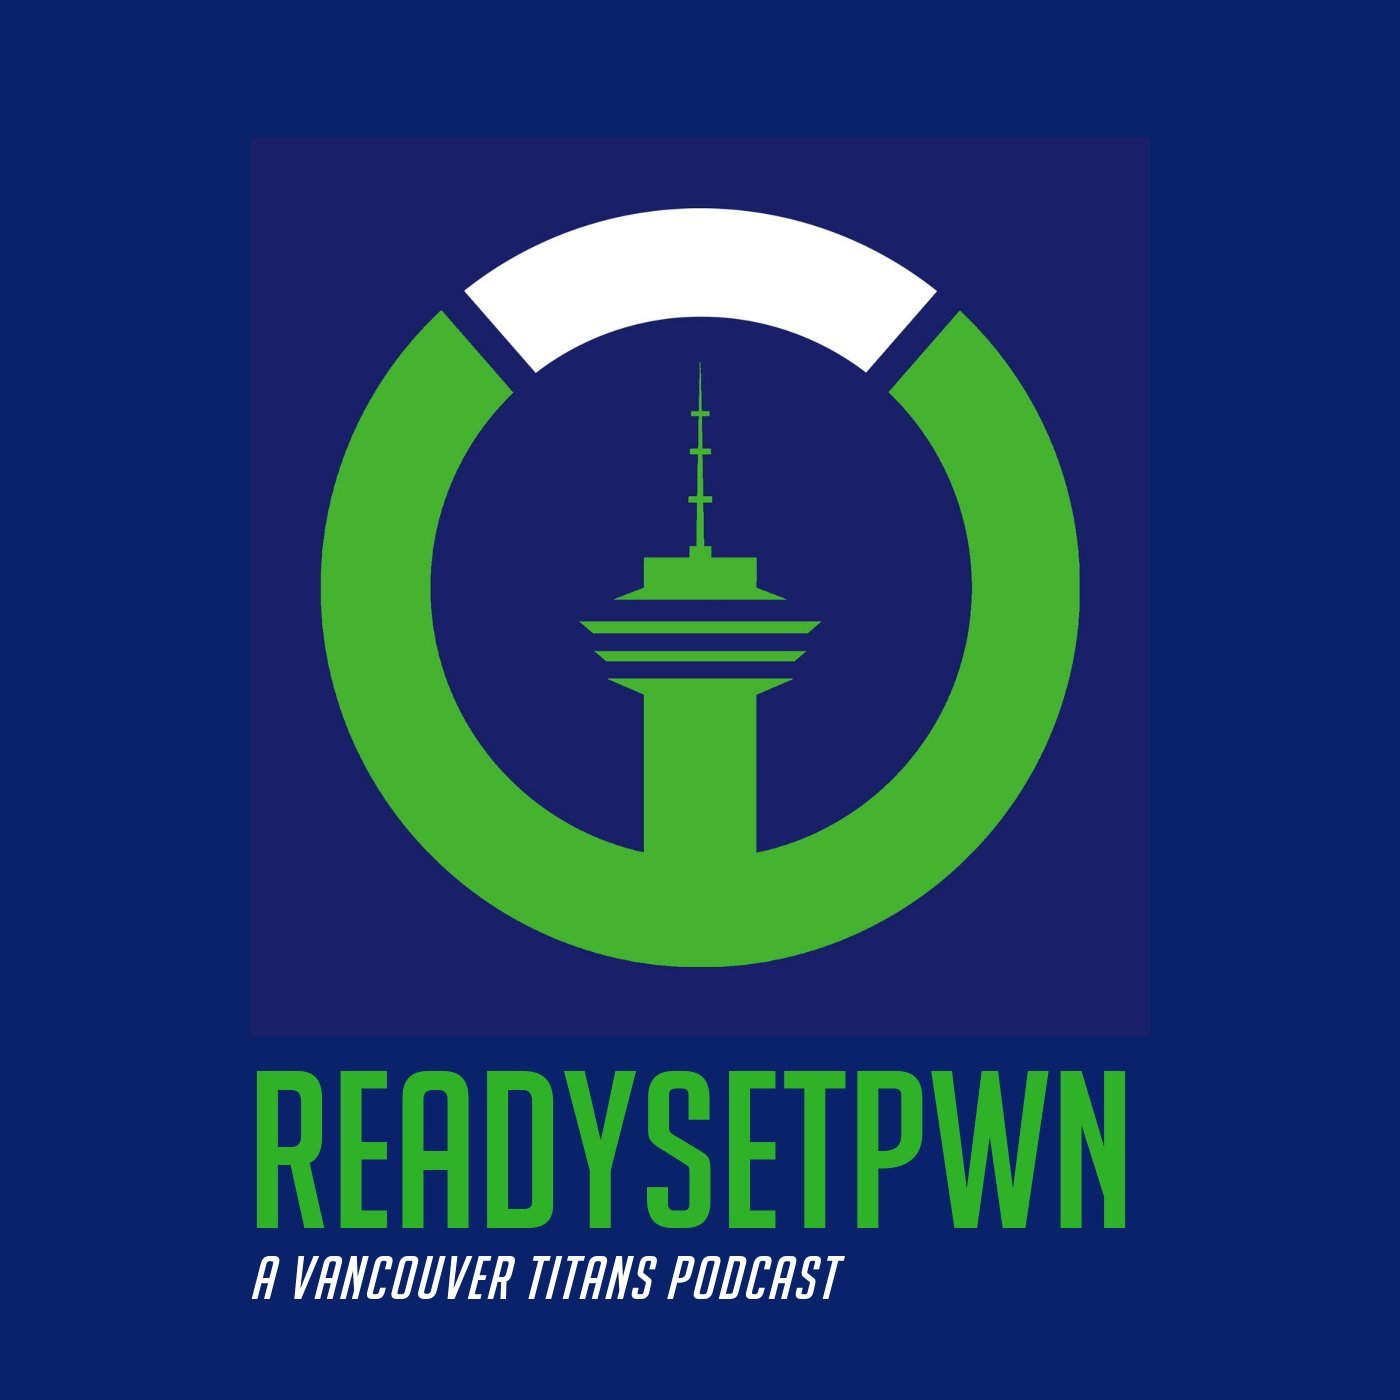 Episode 5 - The Vancouver Titans